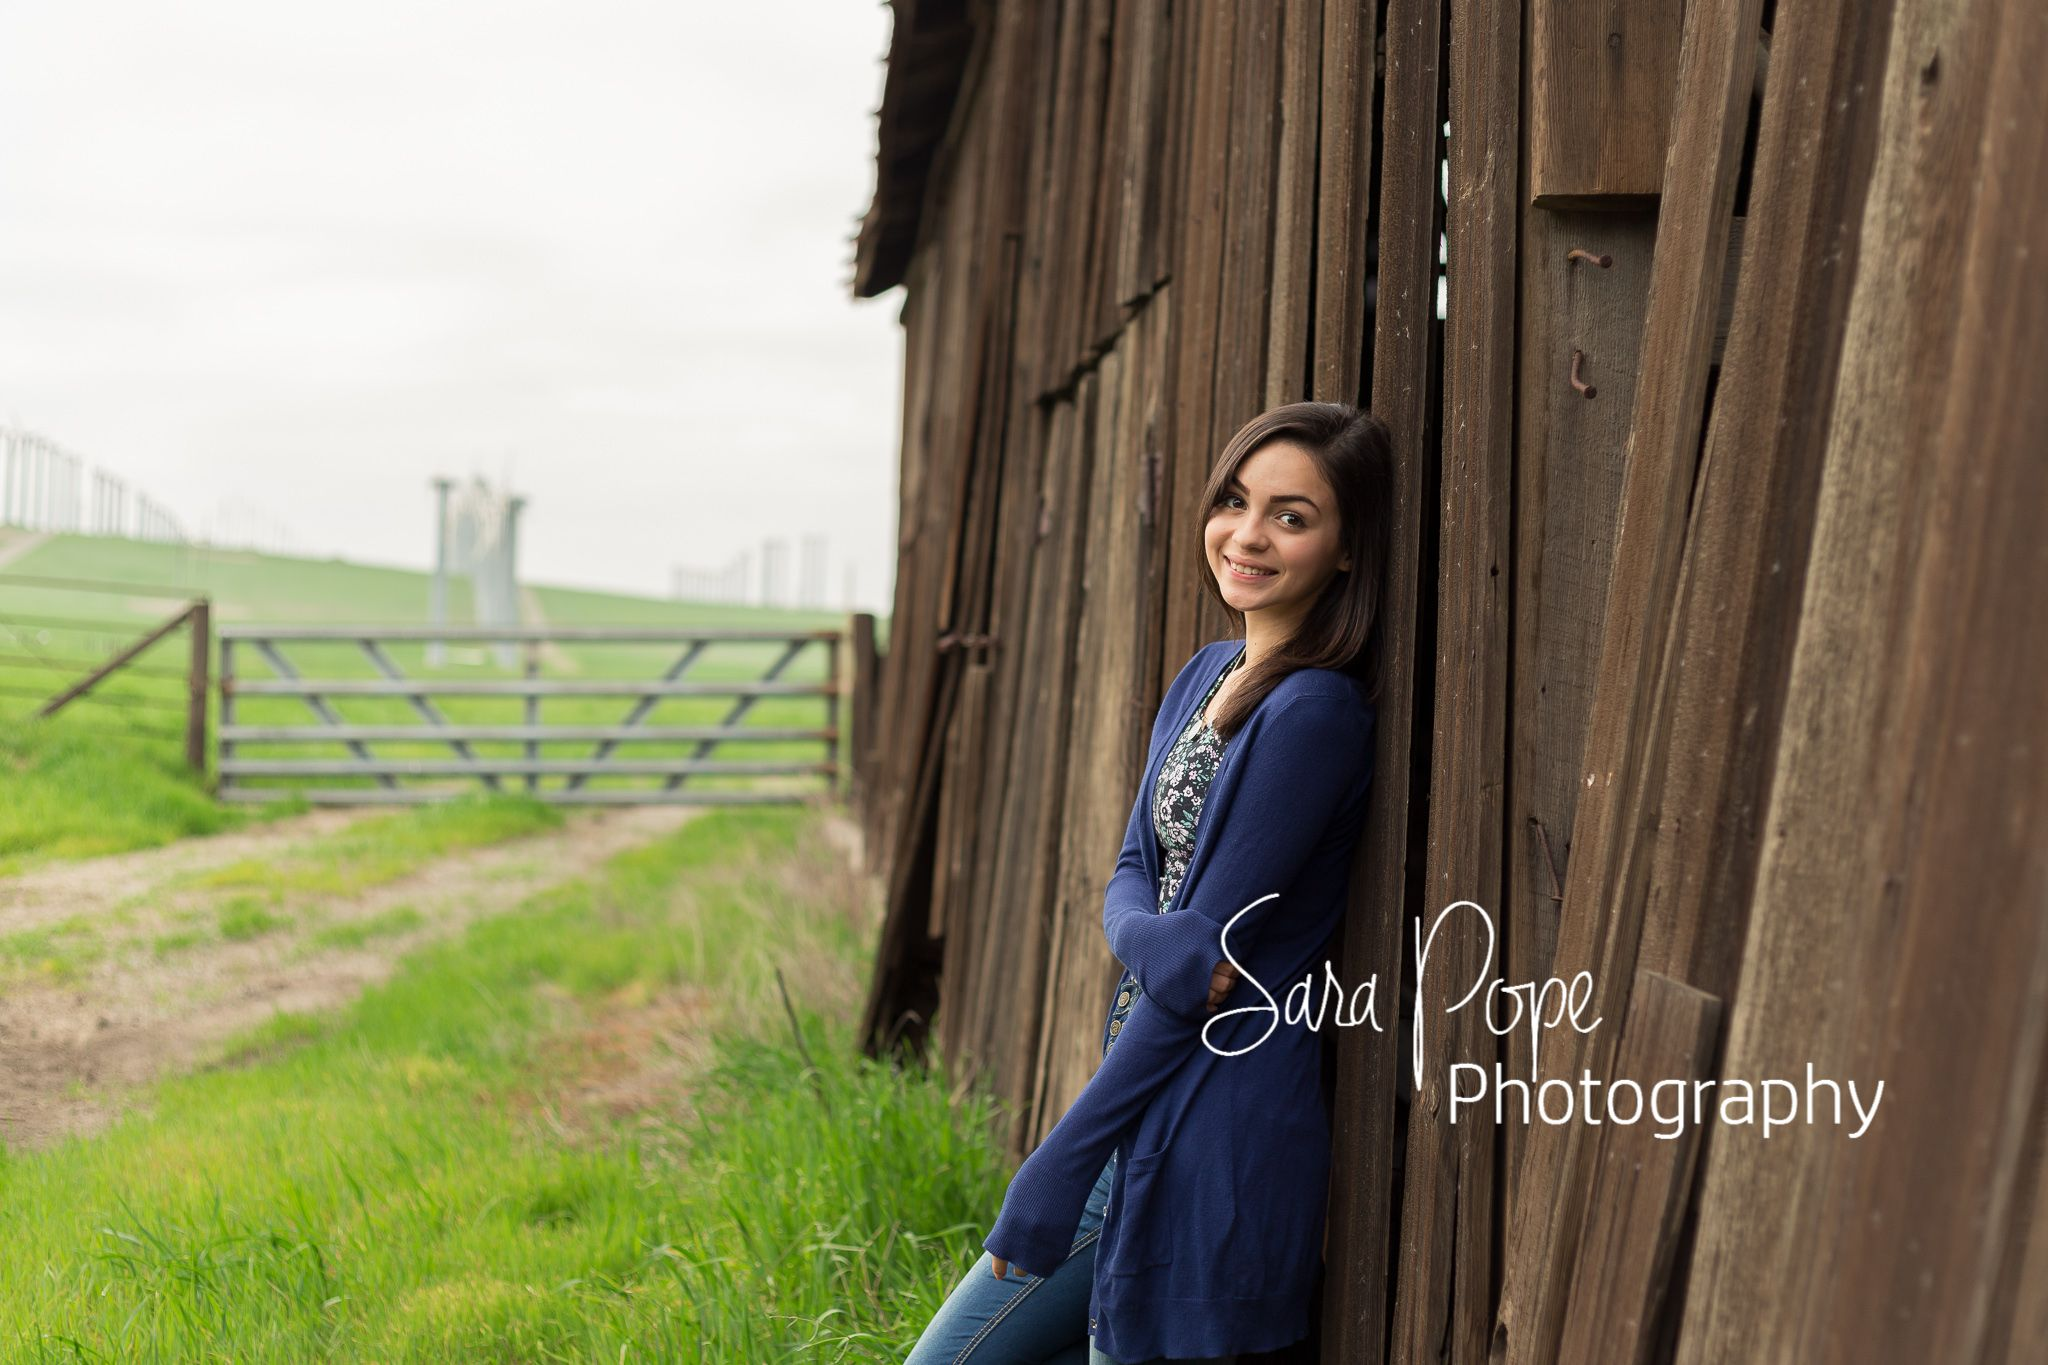 Sara Pope Photography / natural light / Brentwood CA / Oakley / Bay Area Photographer / East County /  country / barn